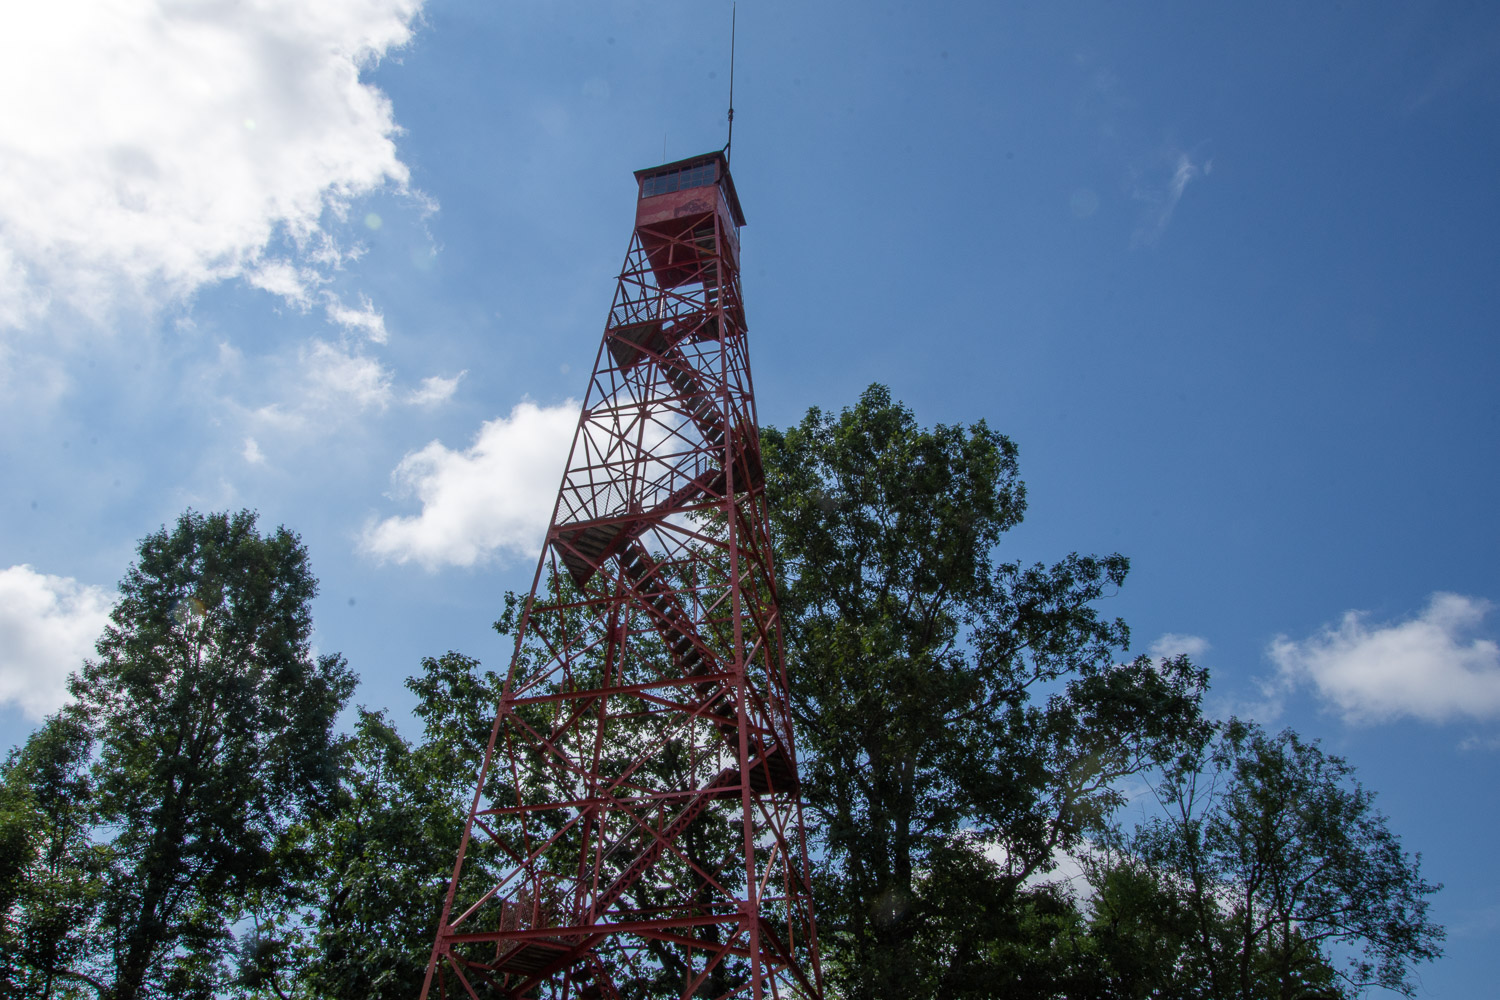 Fire tower at Mohican STate Park in Ohio.